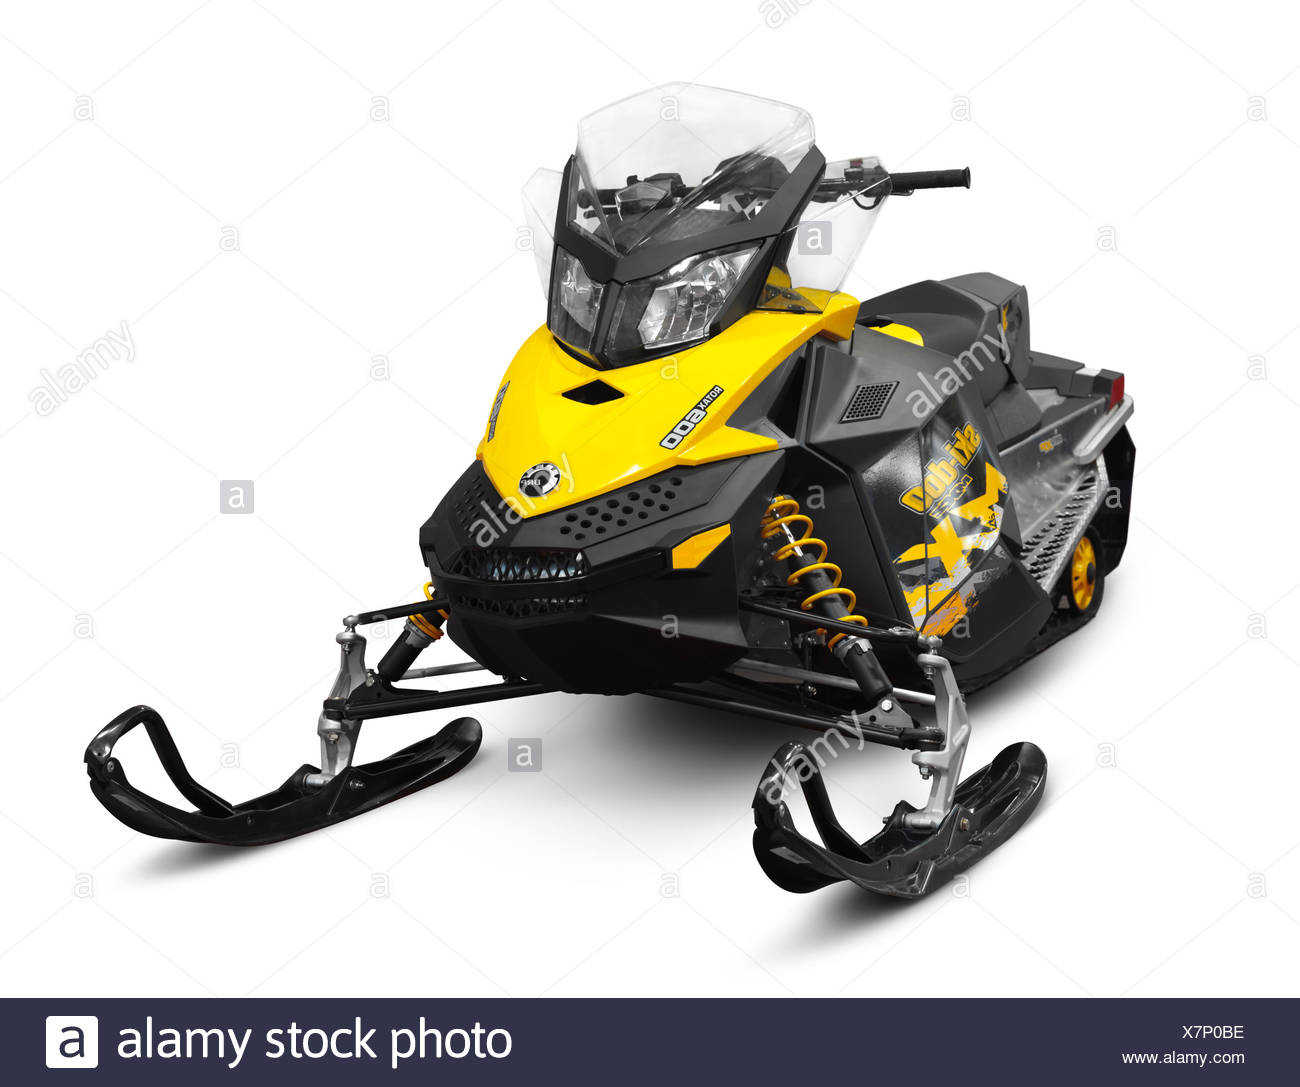 Bombardier Recreational Products >> Bombardier Recreational Products Brp Ski Doo Mx Z Sport Snowmobile